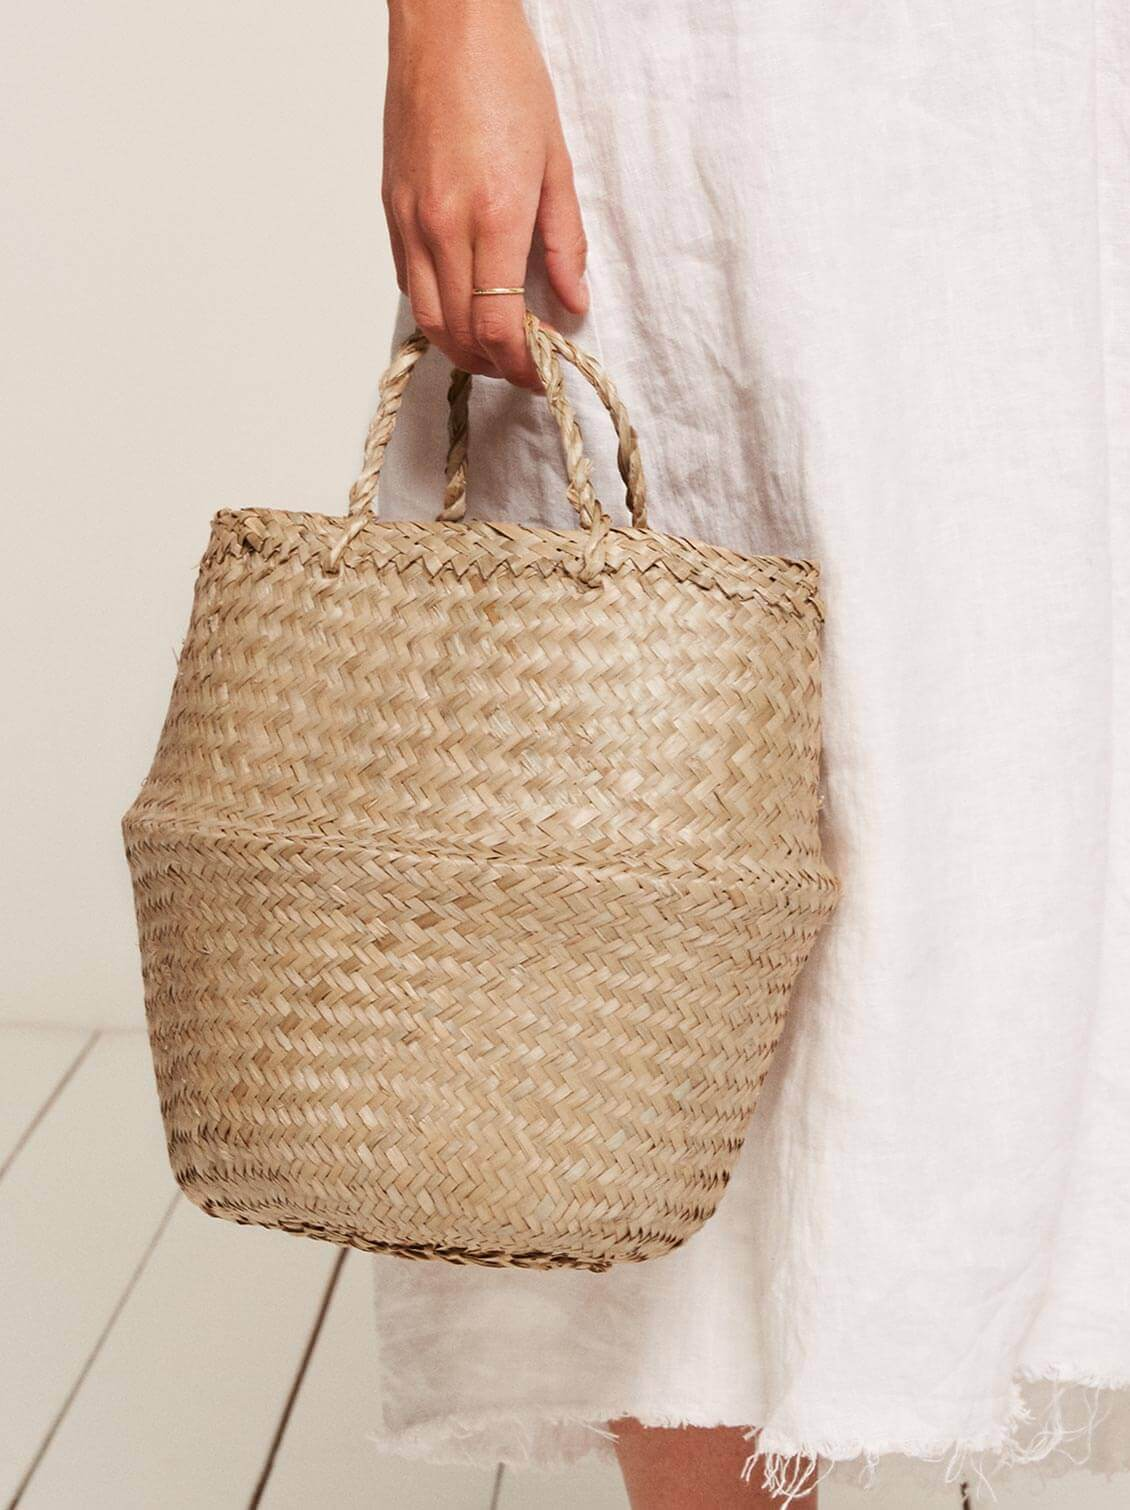 Reformation Large straw bag